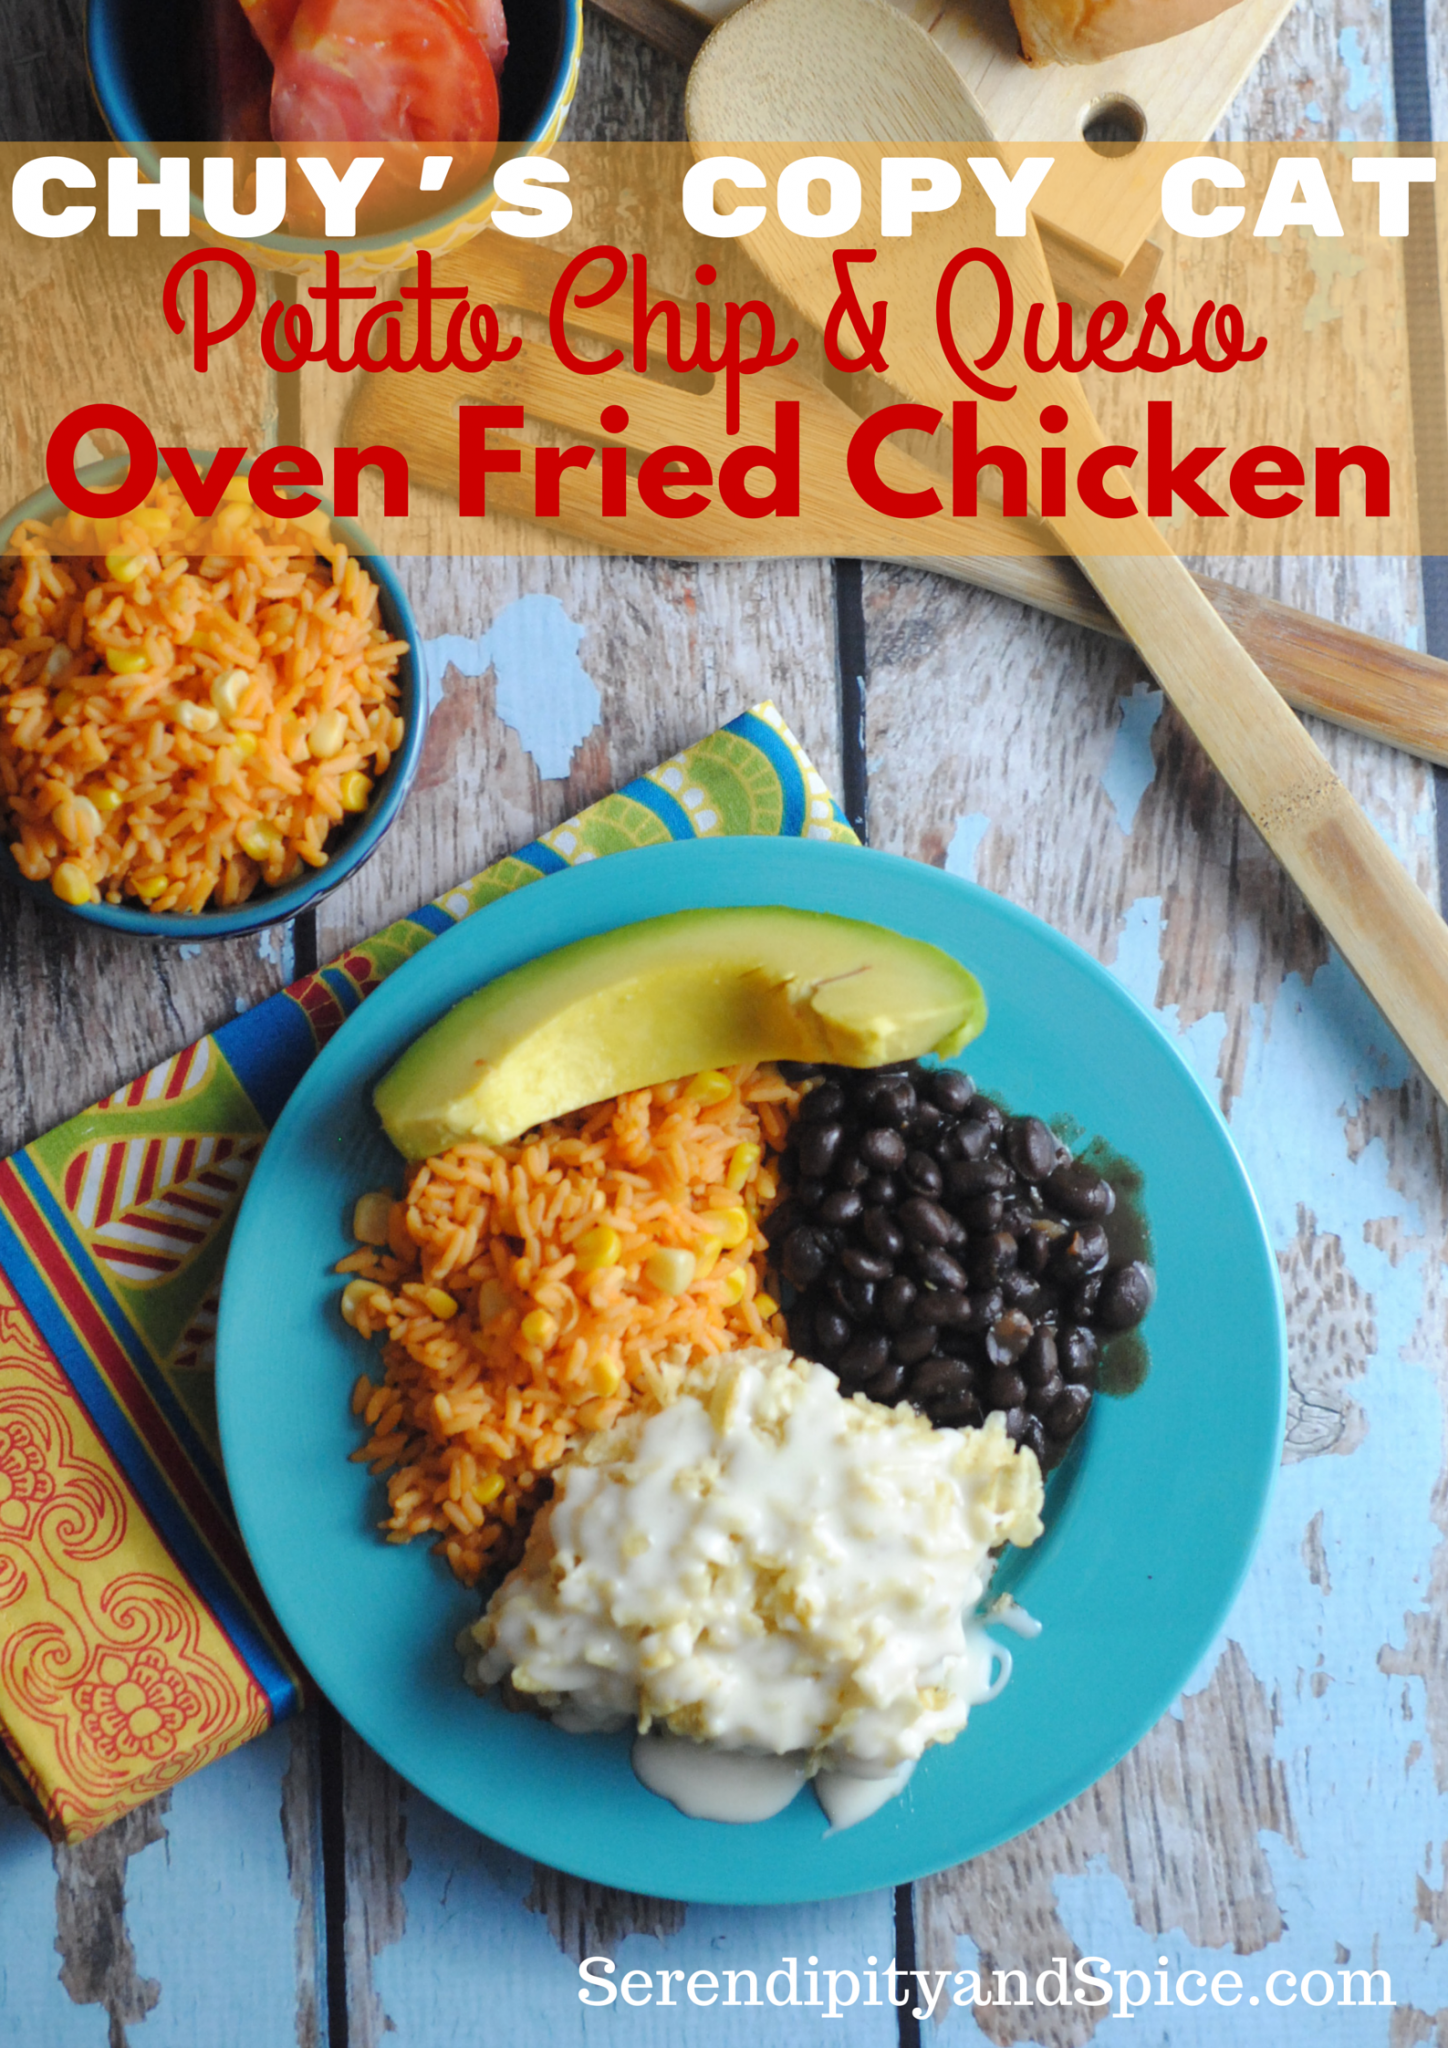 Queso Potato Chip Oven Baked Chicken Recipe